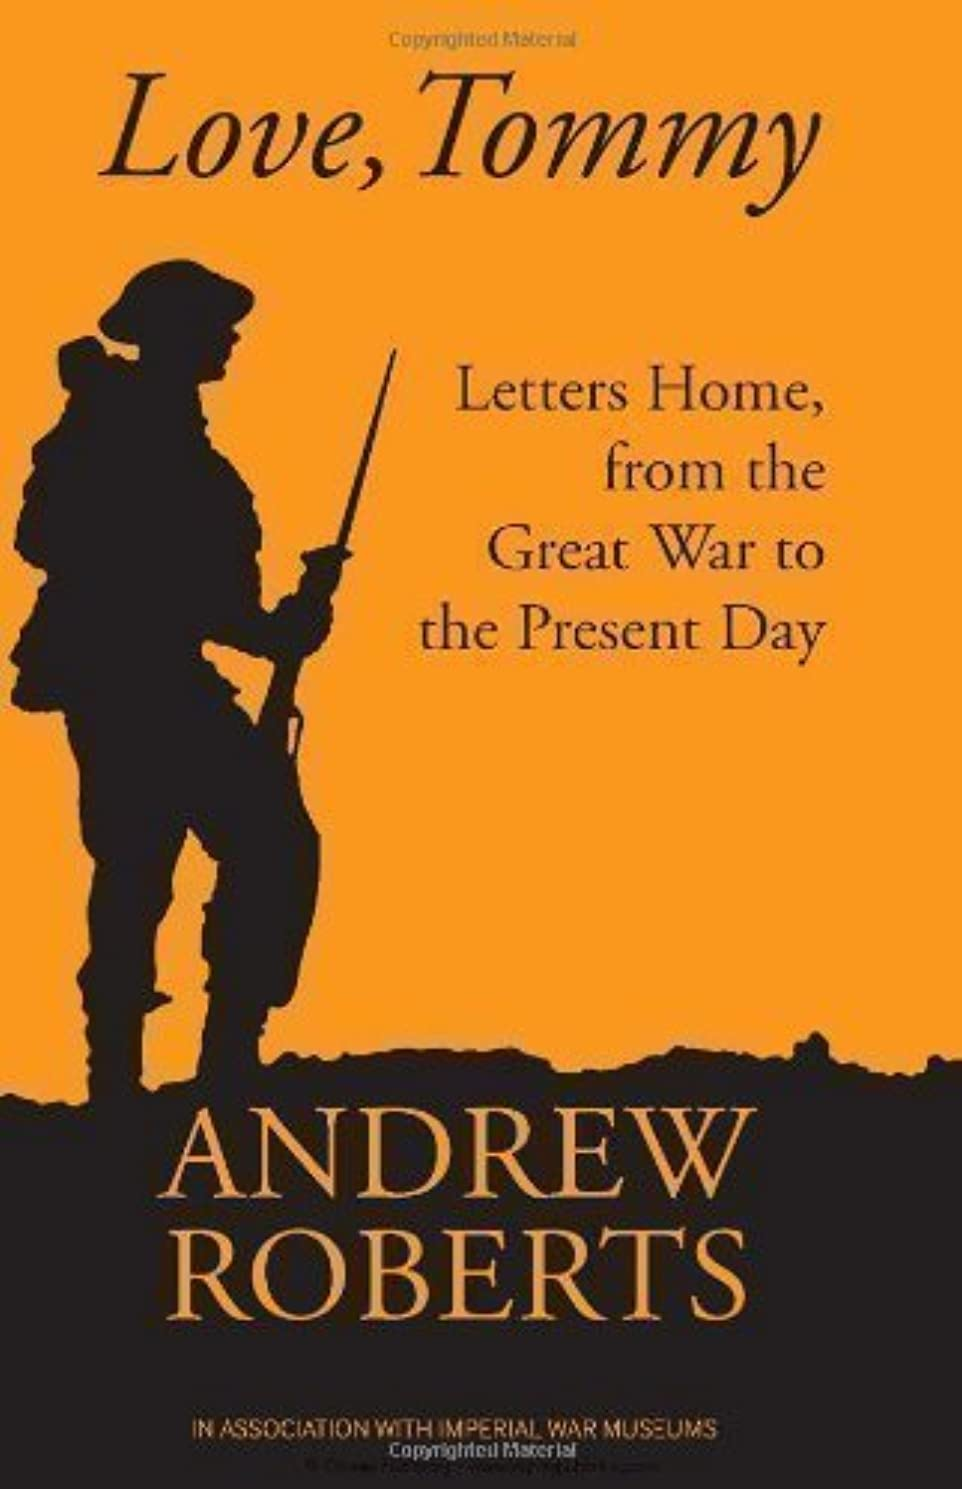 Love Tommy: Letters Home, from the Great War to the Present Day by Andrew Roberts & The Imperial War Museum (2012)